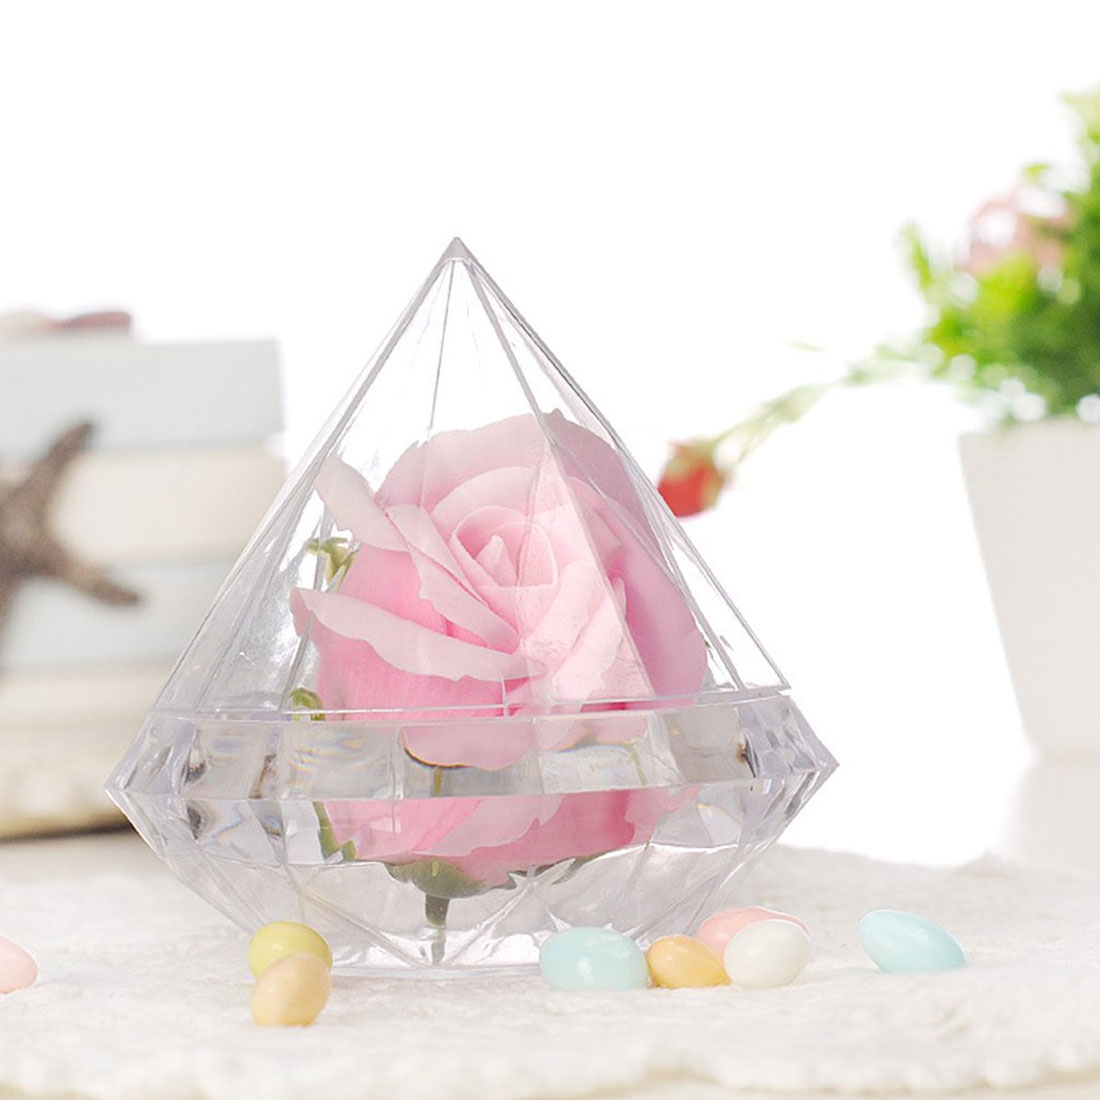 Transparent Clear Gift Candy Box Diamond Shape Plastic Chocolate Bags Boxes Wedding Favor Party Event Home Decoration